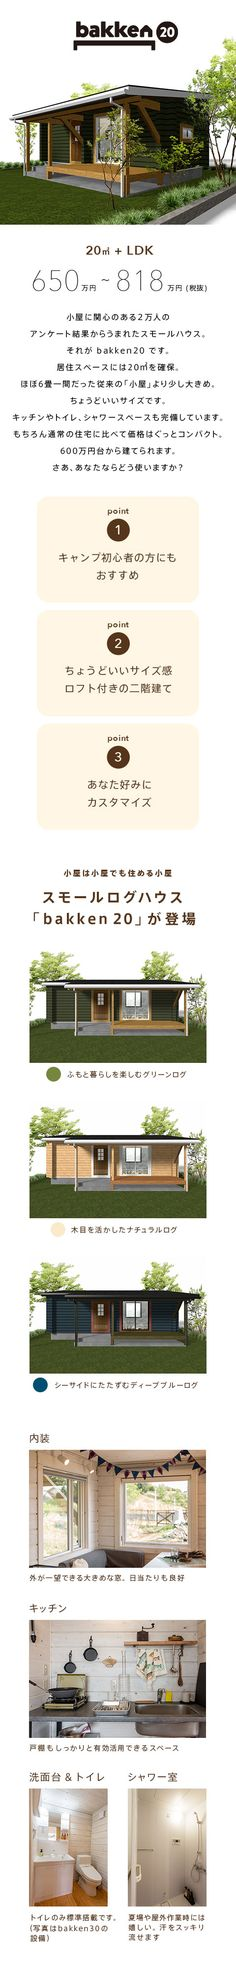 Best house plans cottage style tiny homes Ideas Small Summer House, Small Tiny House, Tiny House Design, White Exterior Paint, Exterior House Colors, House Layout Plans, House Layouts, Japanese Modern House, Modern Porch